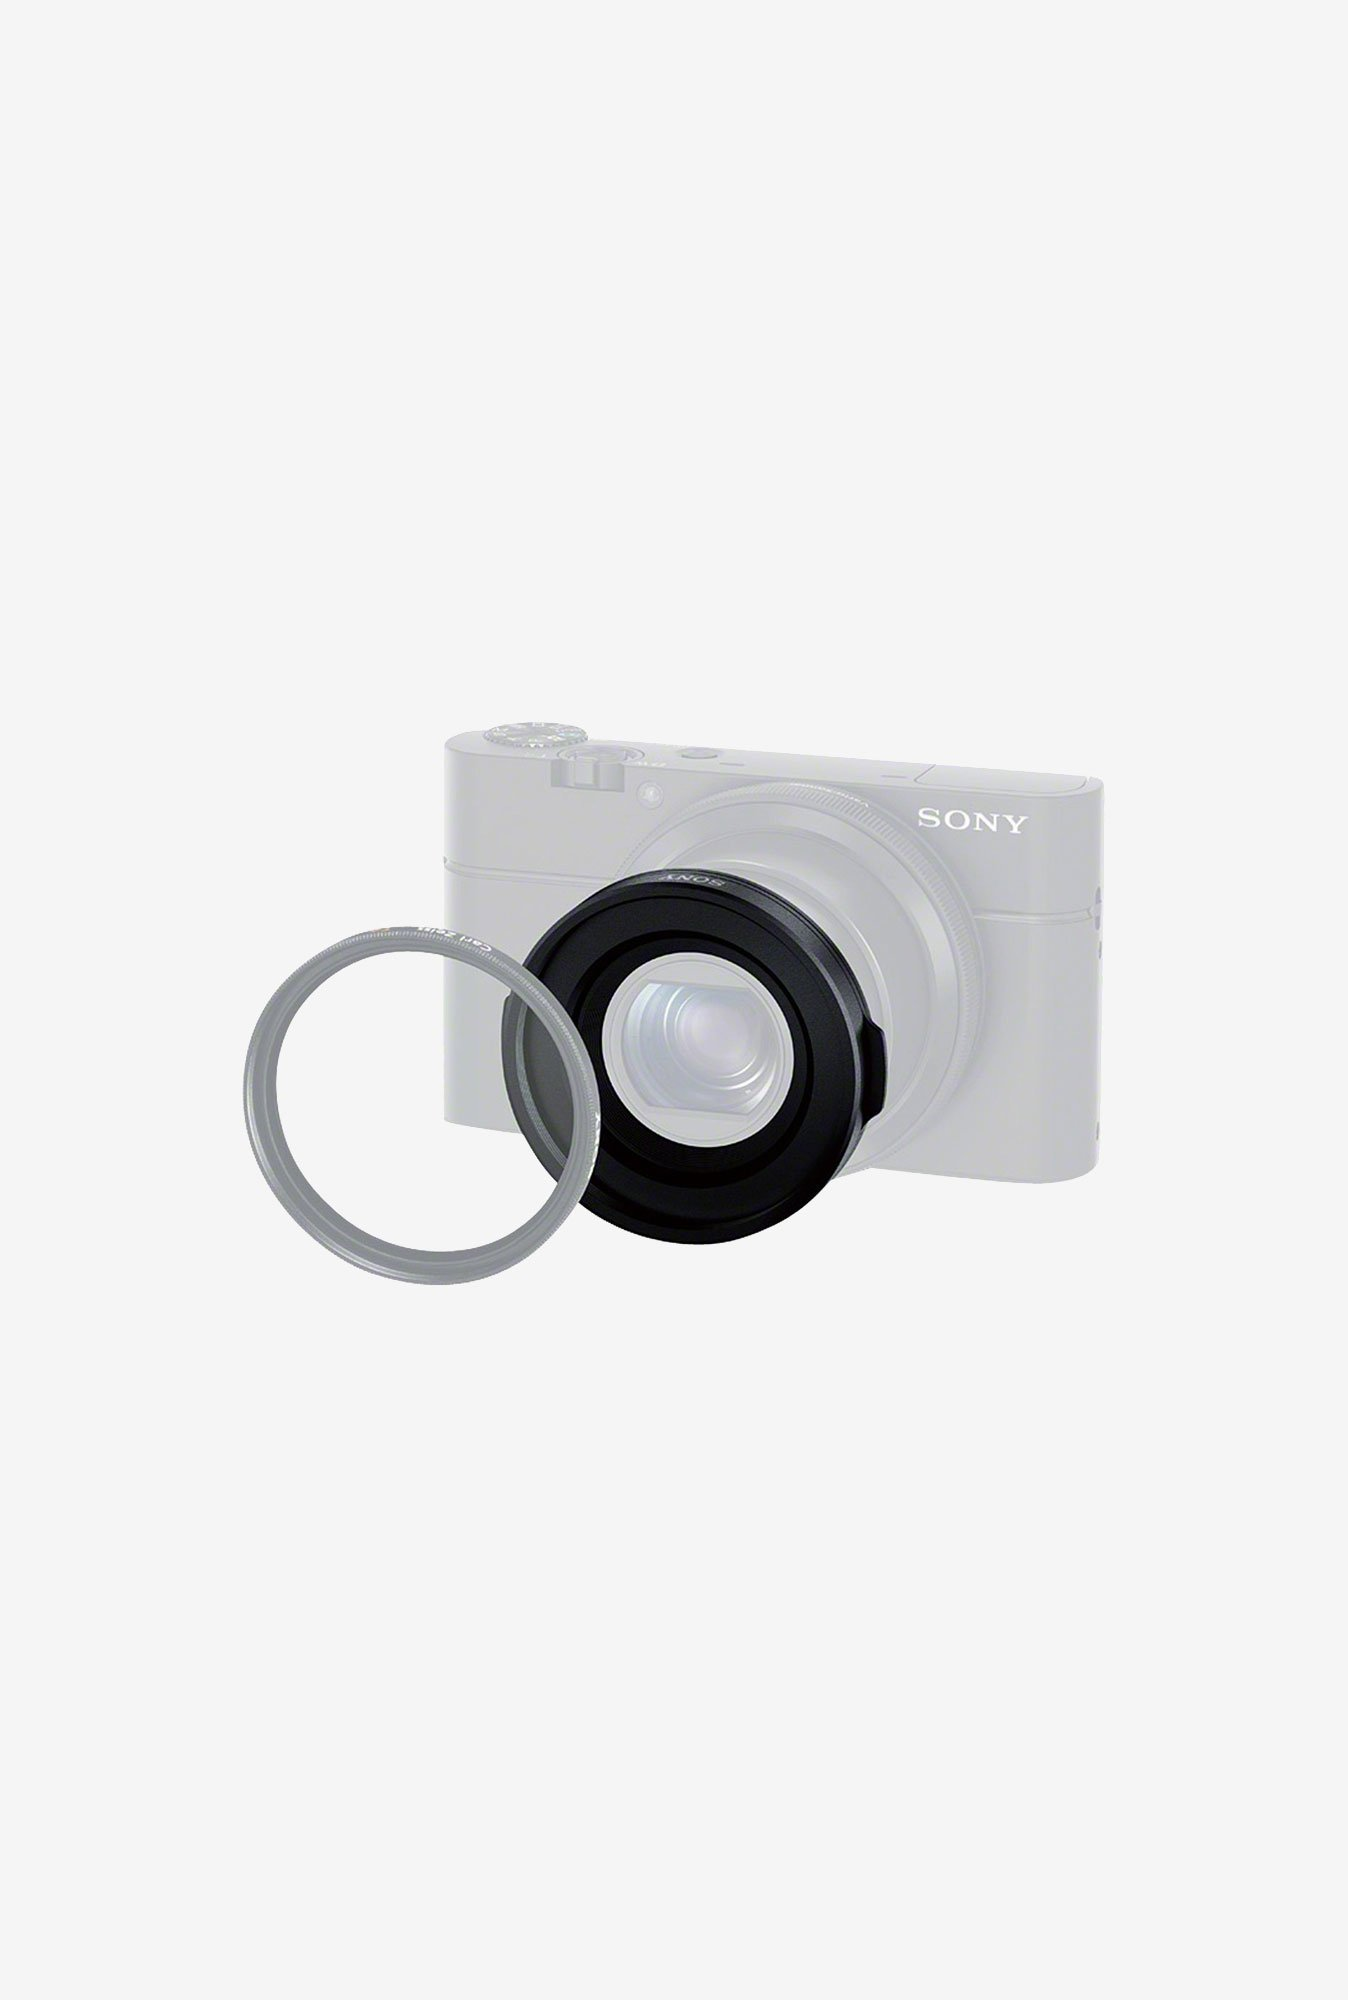 Sony VFA49R1 Filter Adapter for Dsc-Rx100 Series (Black)